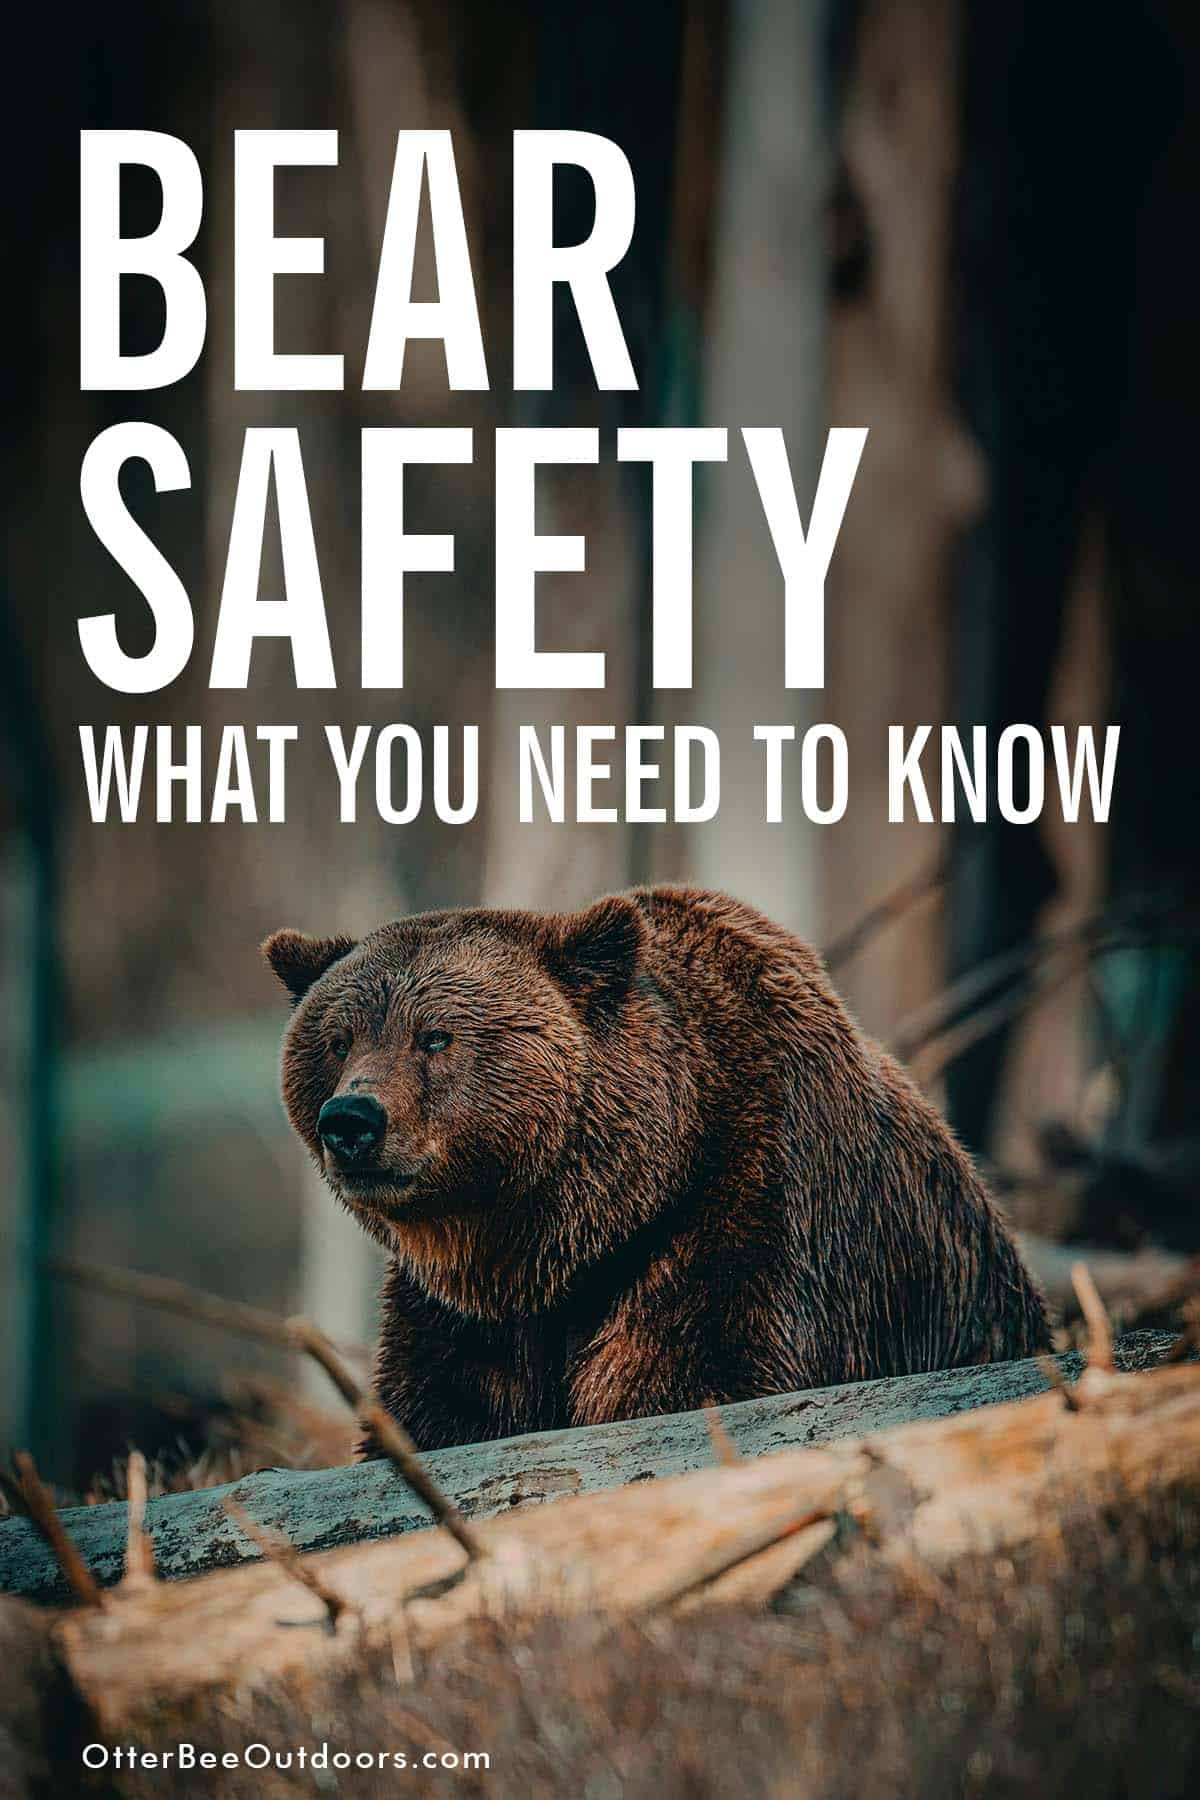 A bear in the woods. What you need to know to stay safe in bear country.